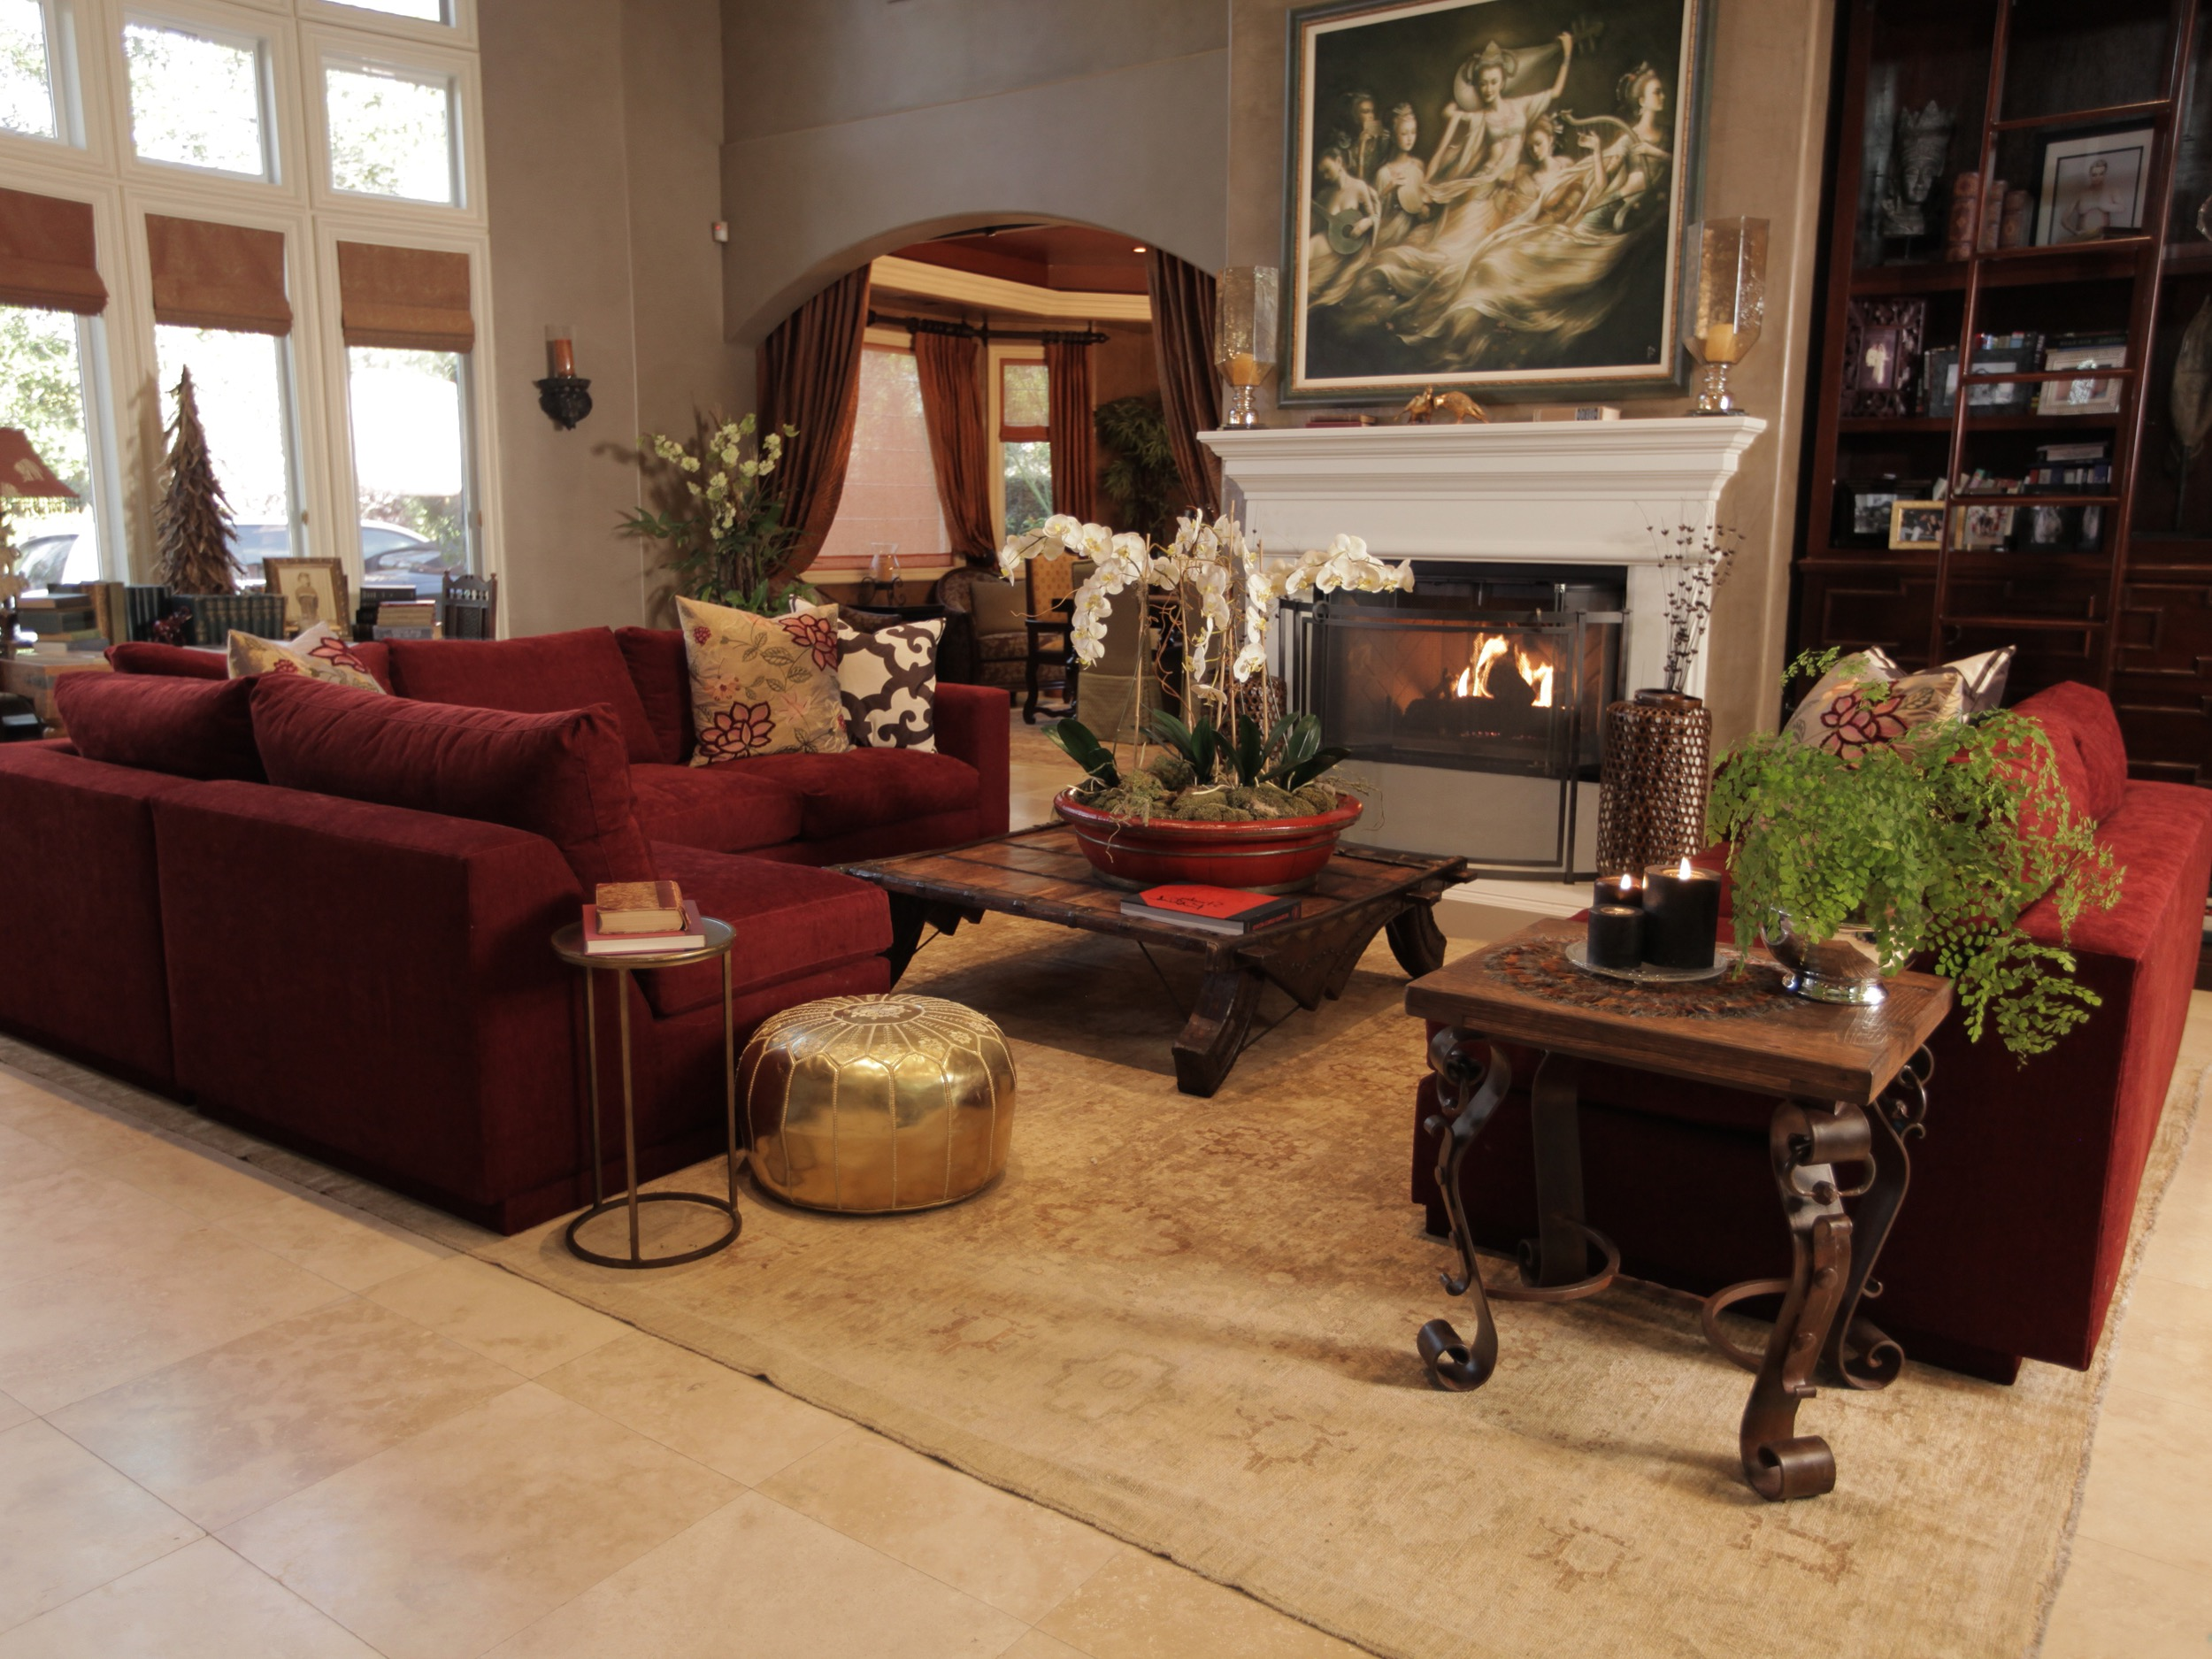 moroccan inspired living room interior decor image 14 of 25